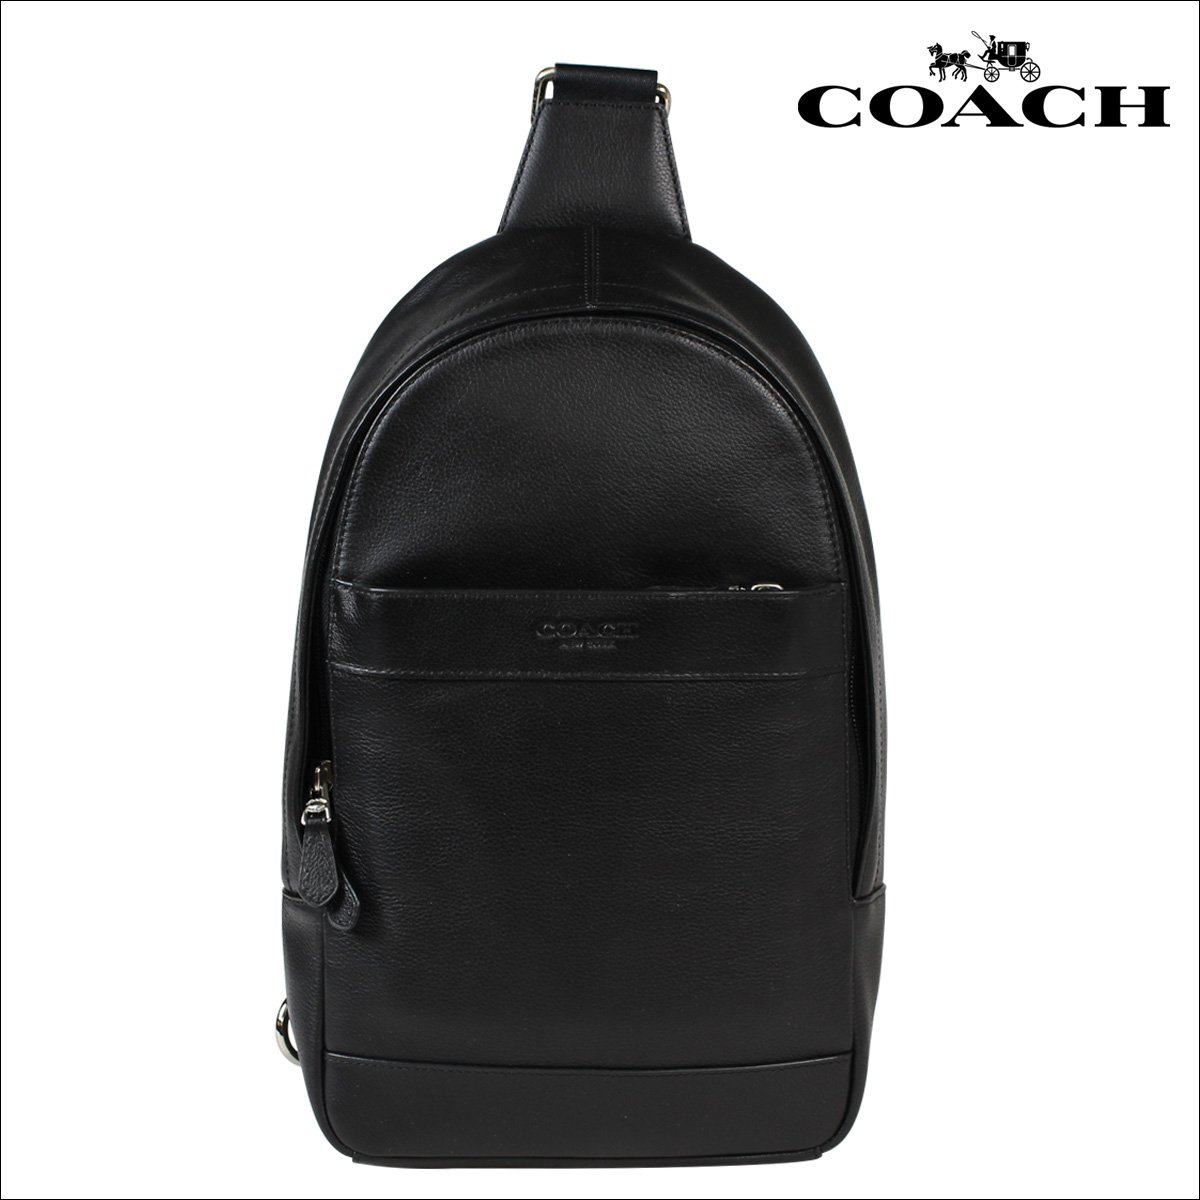 45243be7fadc Galleon - Coach Mens Leather Shoulder Crossbody Bag Charles Pack Backpack  Black F54770